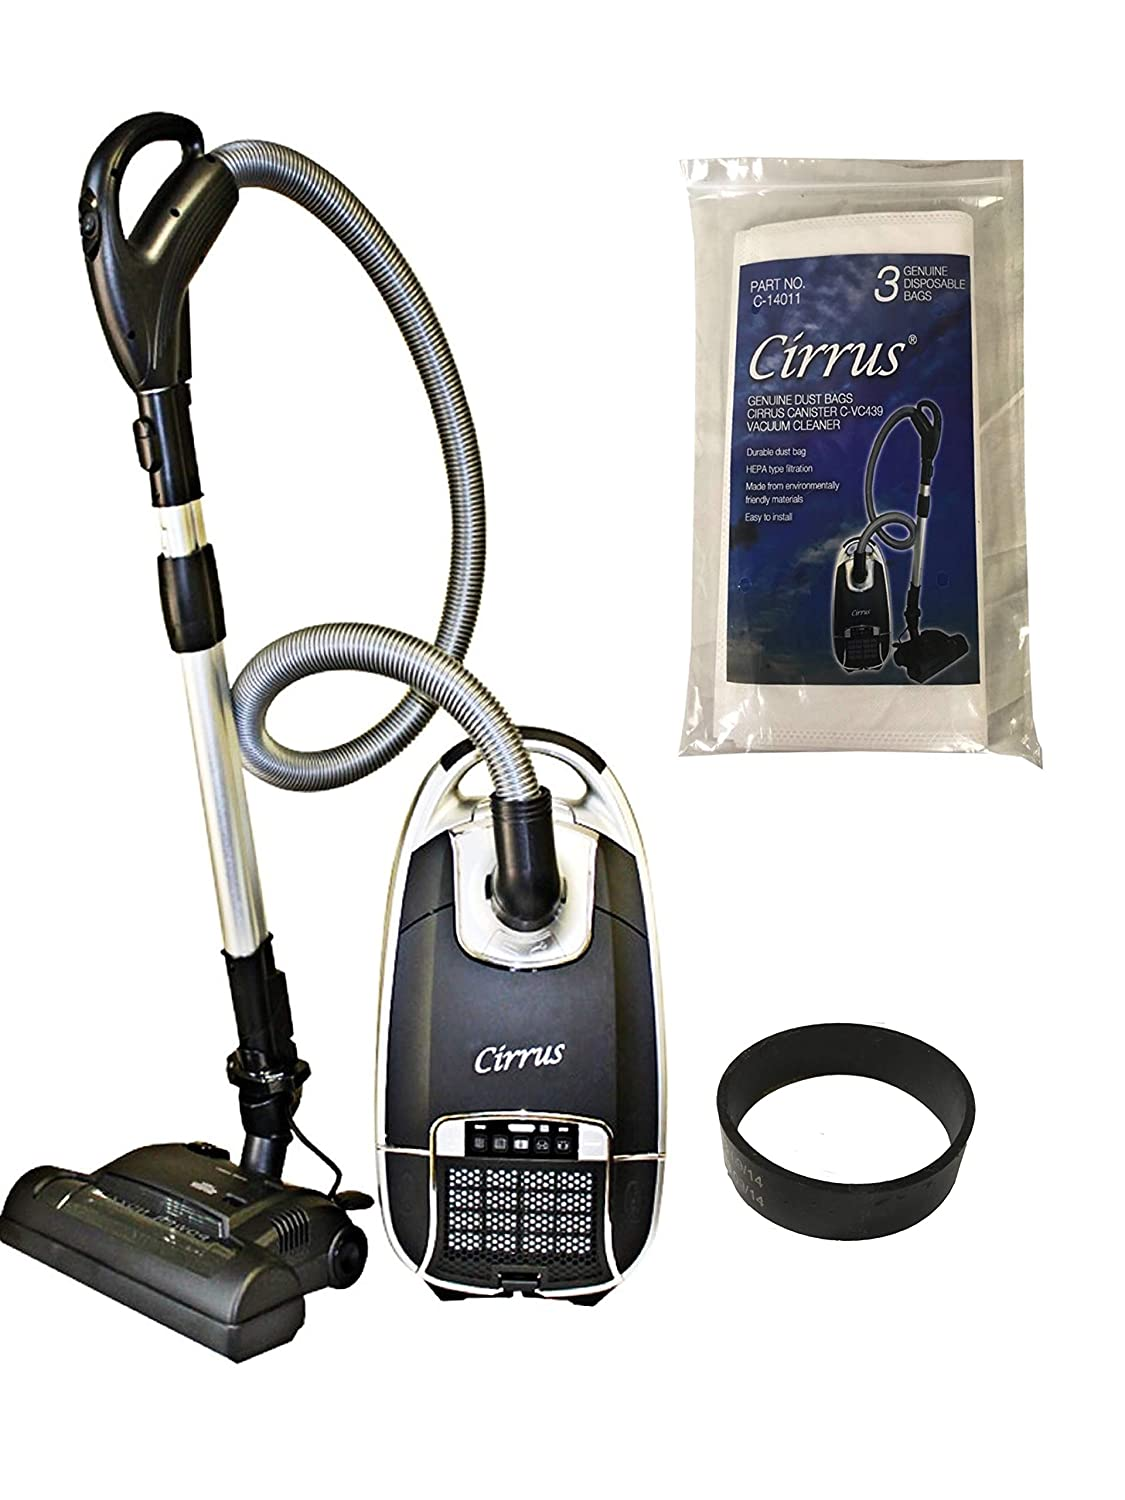 Cirrus Powerhead Residential Canister Vacuum C-VC439 with 3 Bags and 1 Belt Included